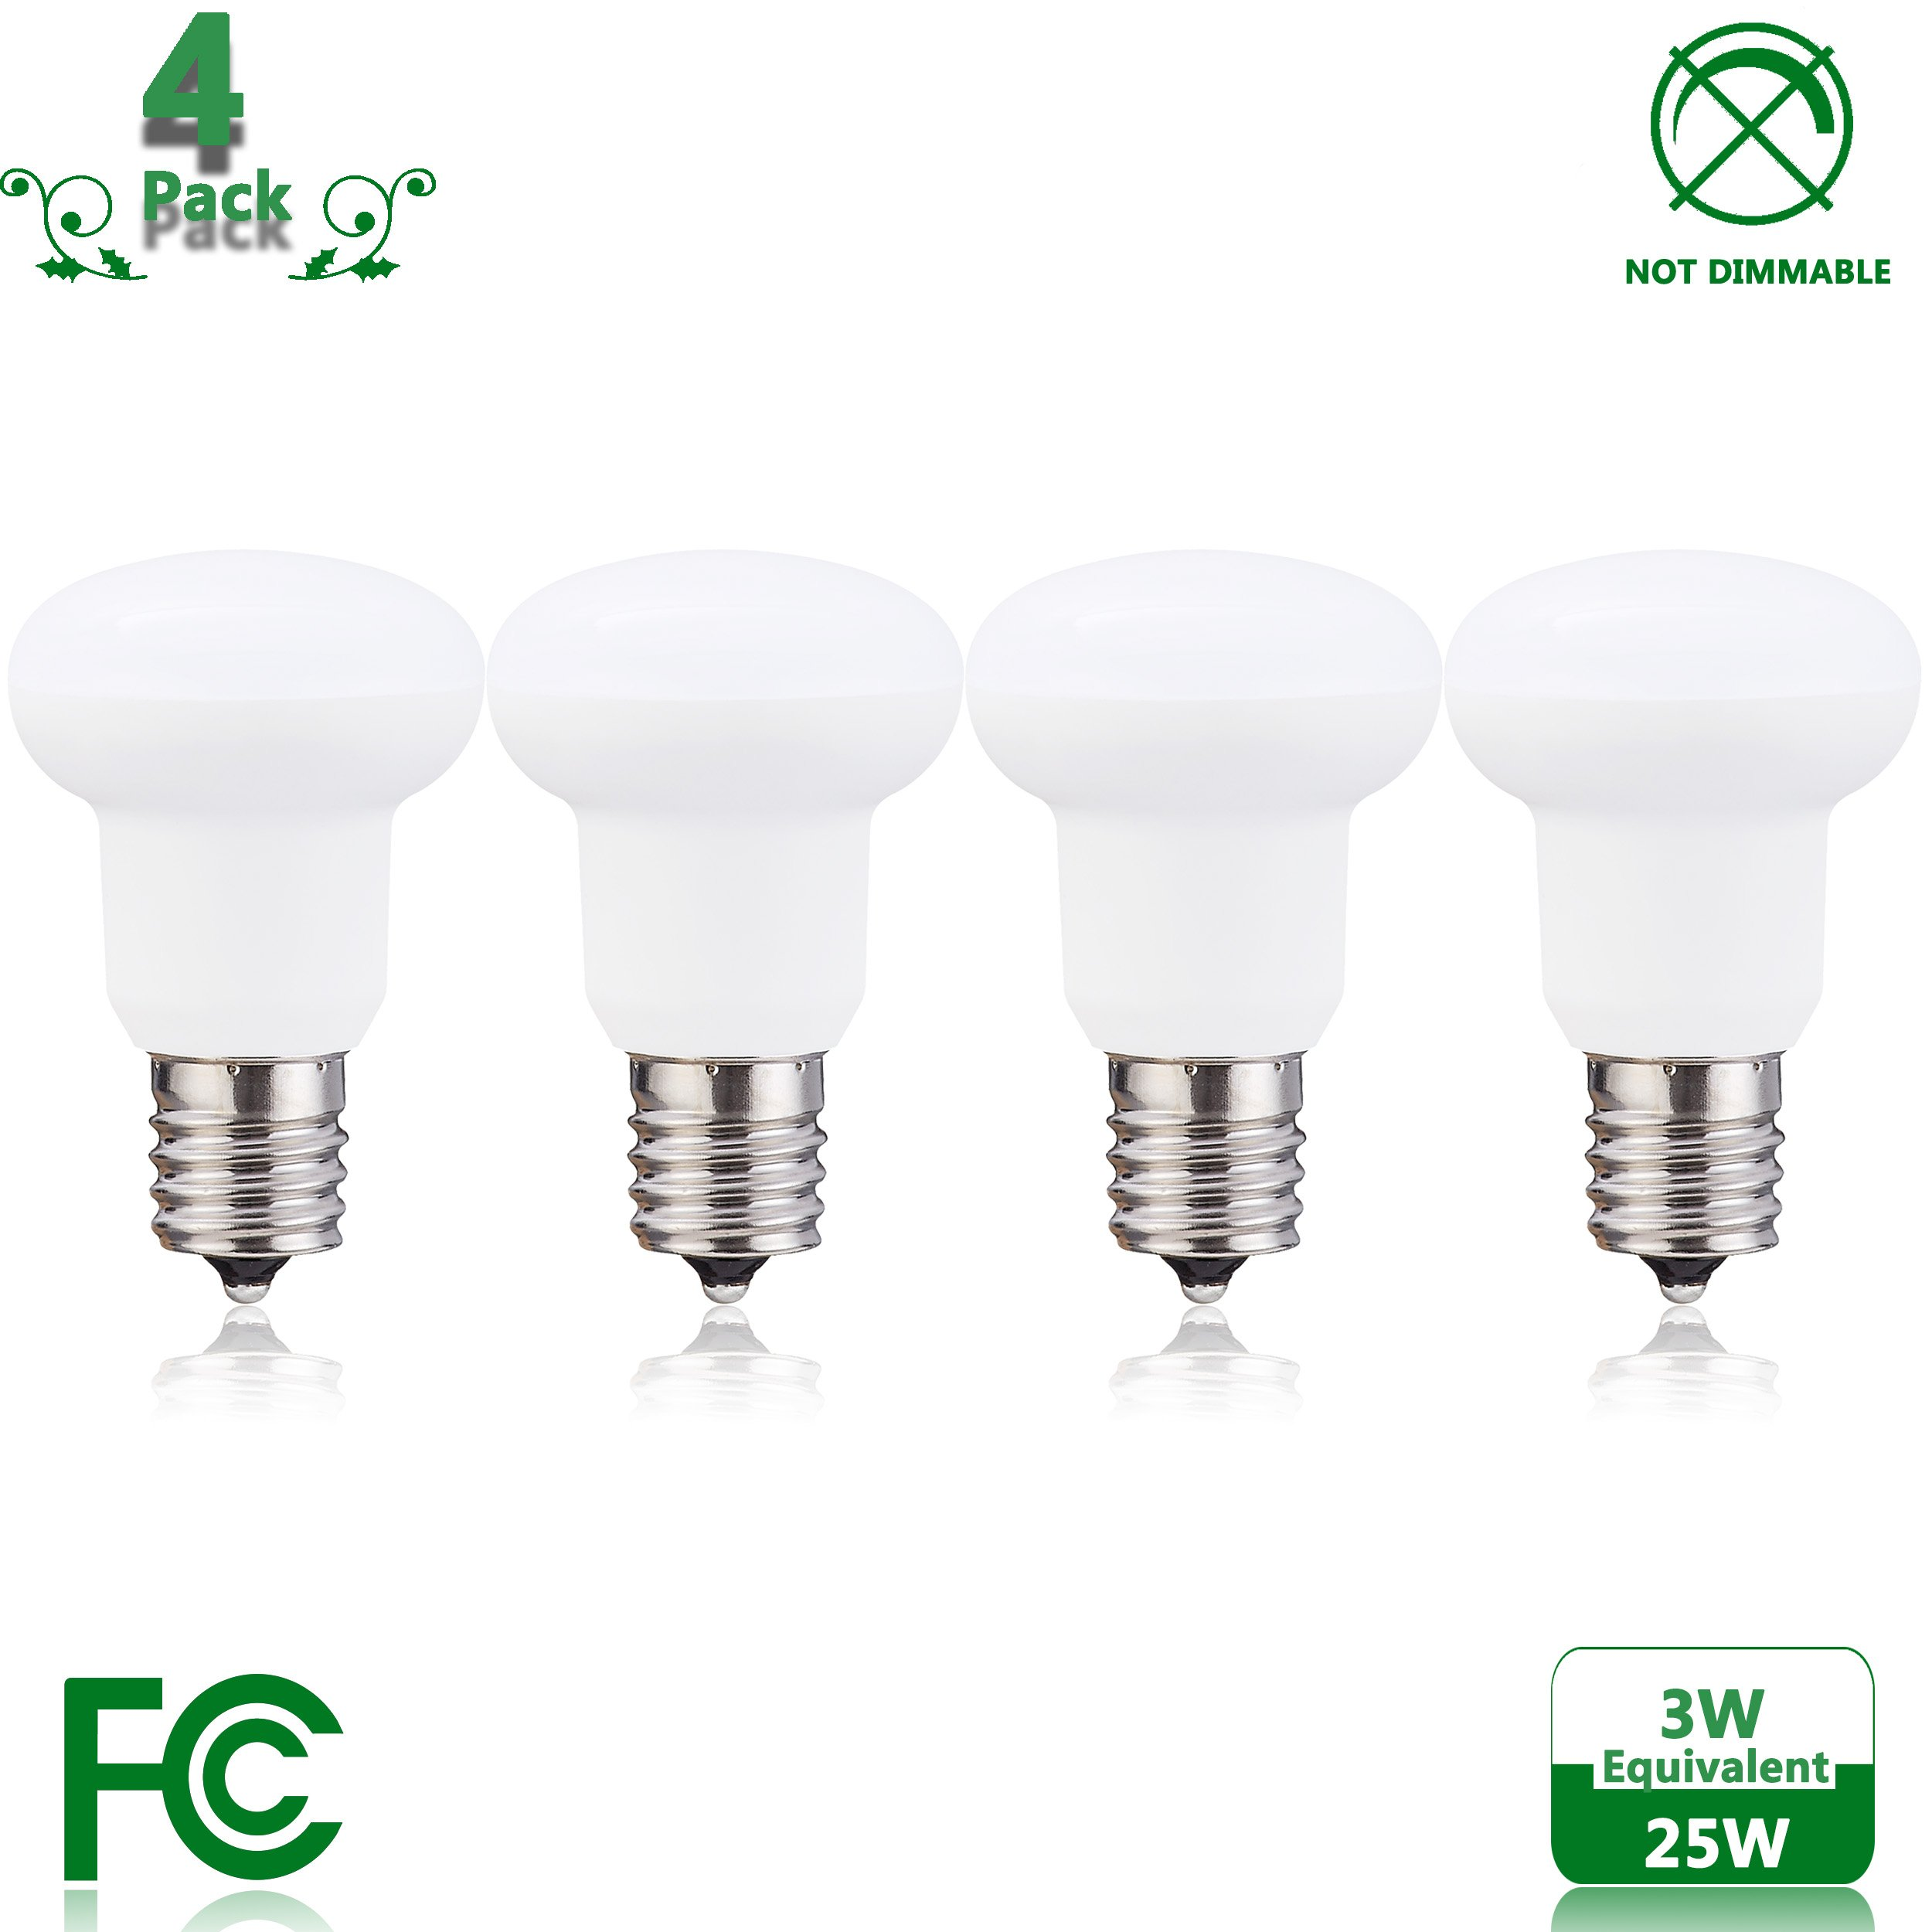 R14 3W LED bulb E17 Non-Dimmable, 25W Incandescent Bulbs Equivalent, Nature White 4000 - 4500K Circular Umbrella Mushroom Lamp - (Pack of 4)